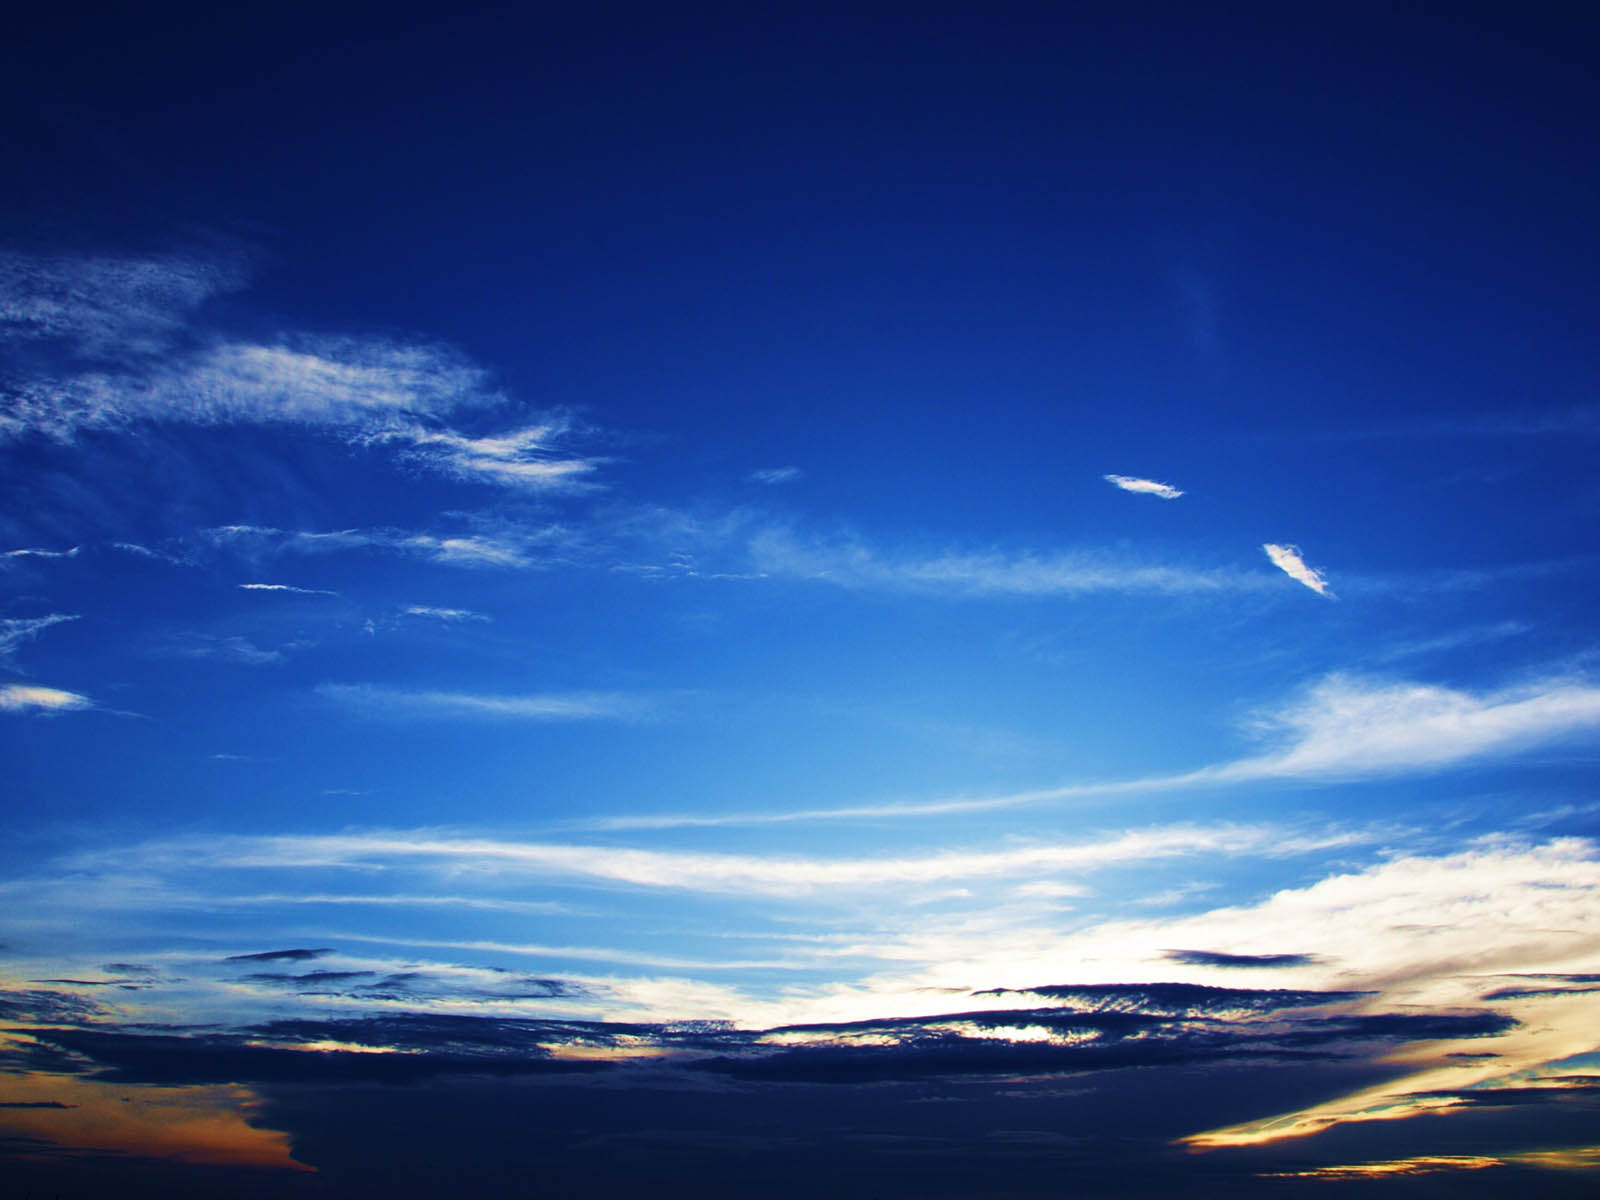 Sky Wallpapers: XS Wallpapers HD: Sky Photos And Wallpapers